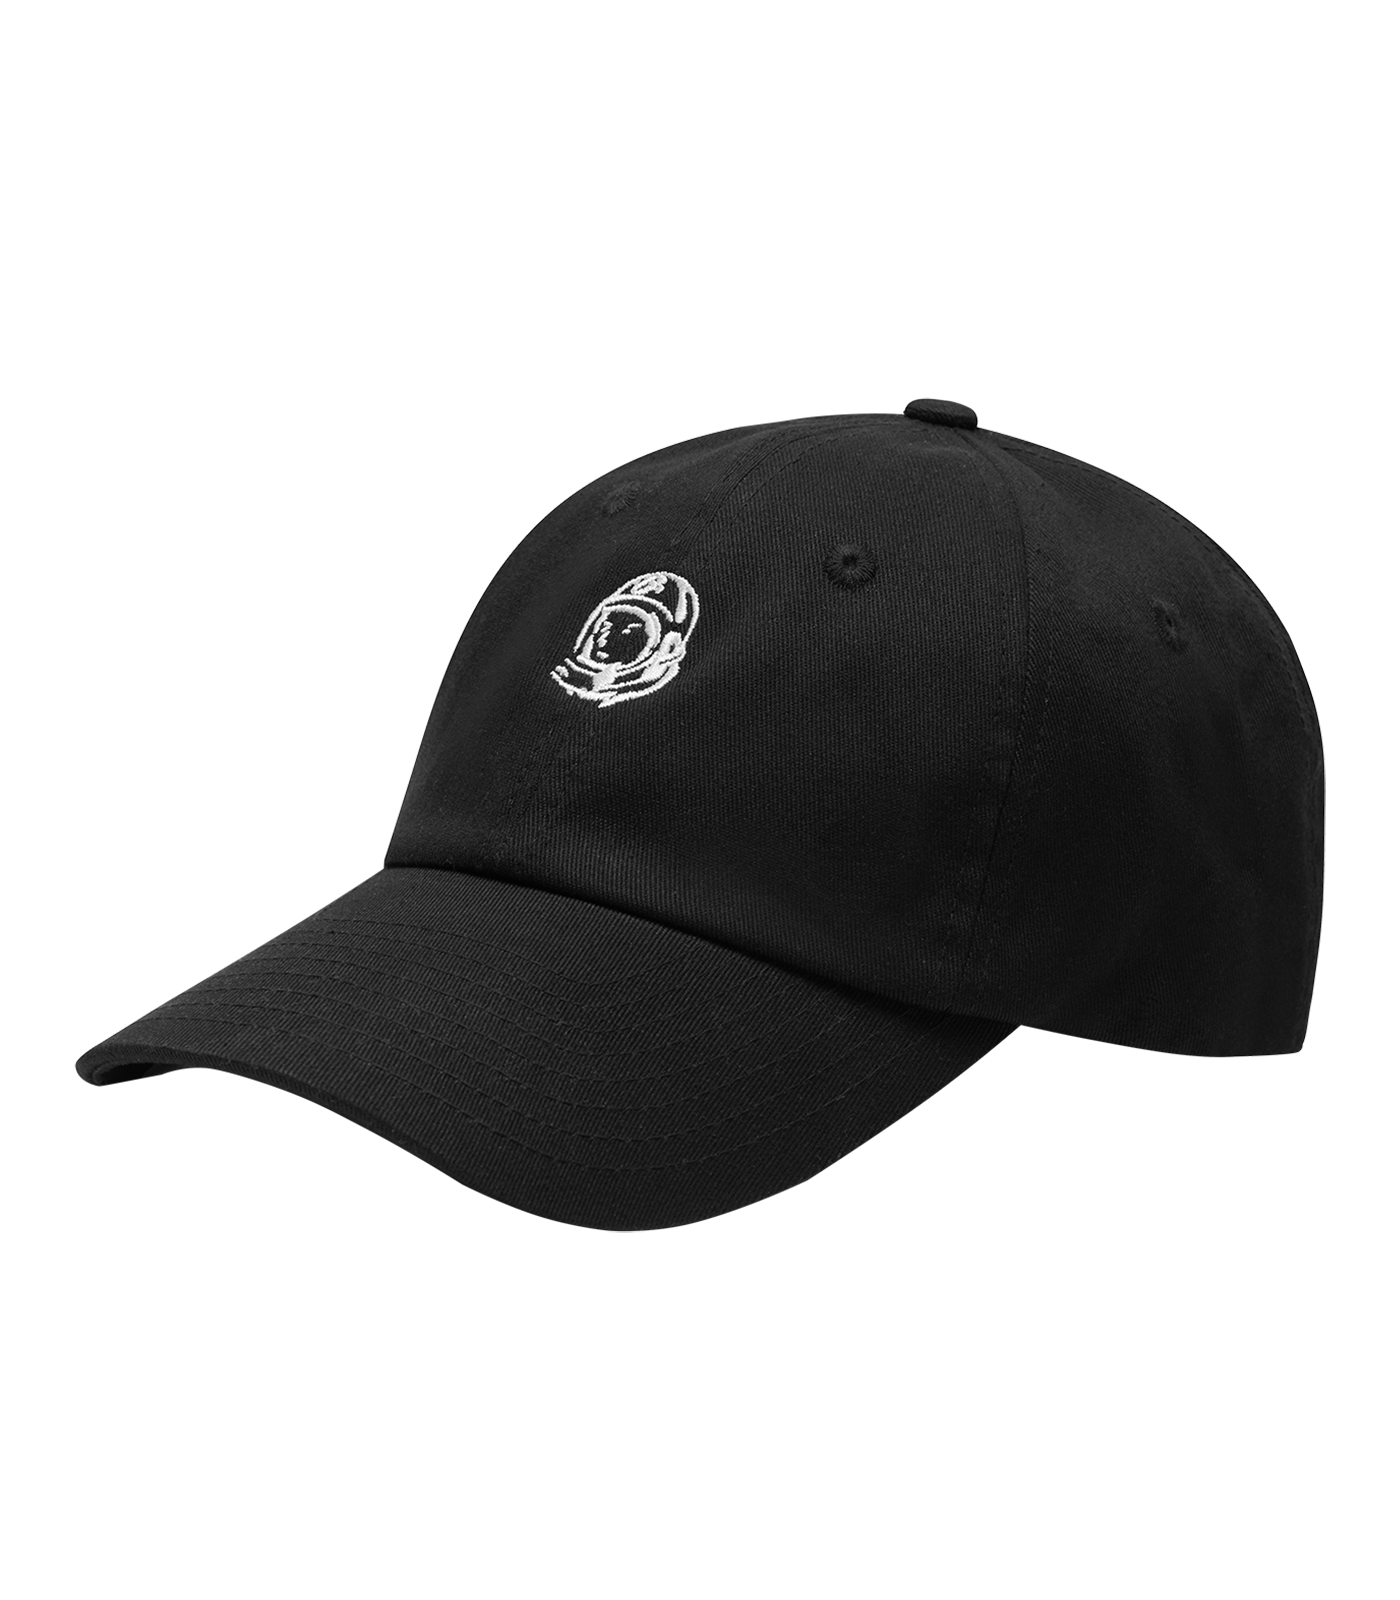 ASTRO EMBROIDERED CURVED VISOR CAP